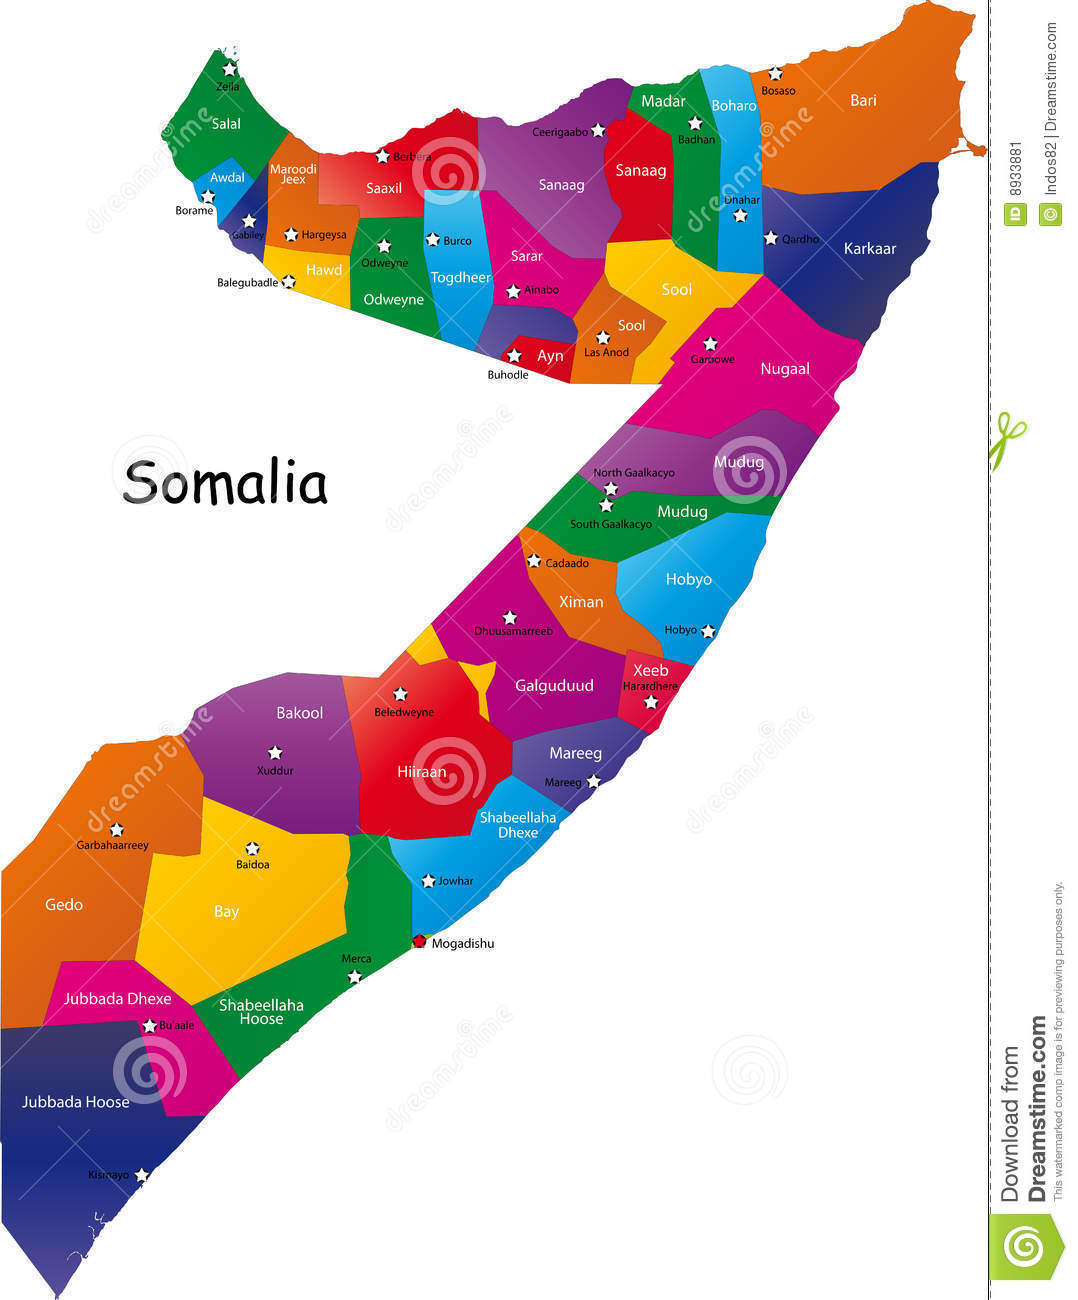 Somalia map stock vector. Illustration of city, country ...